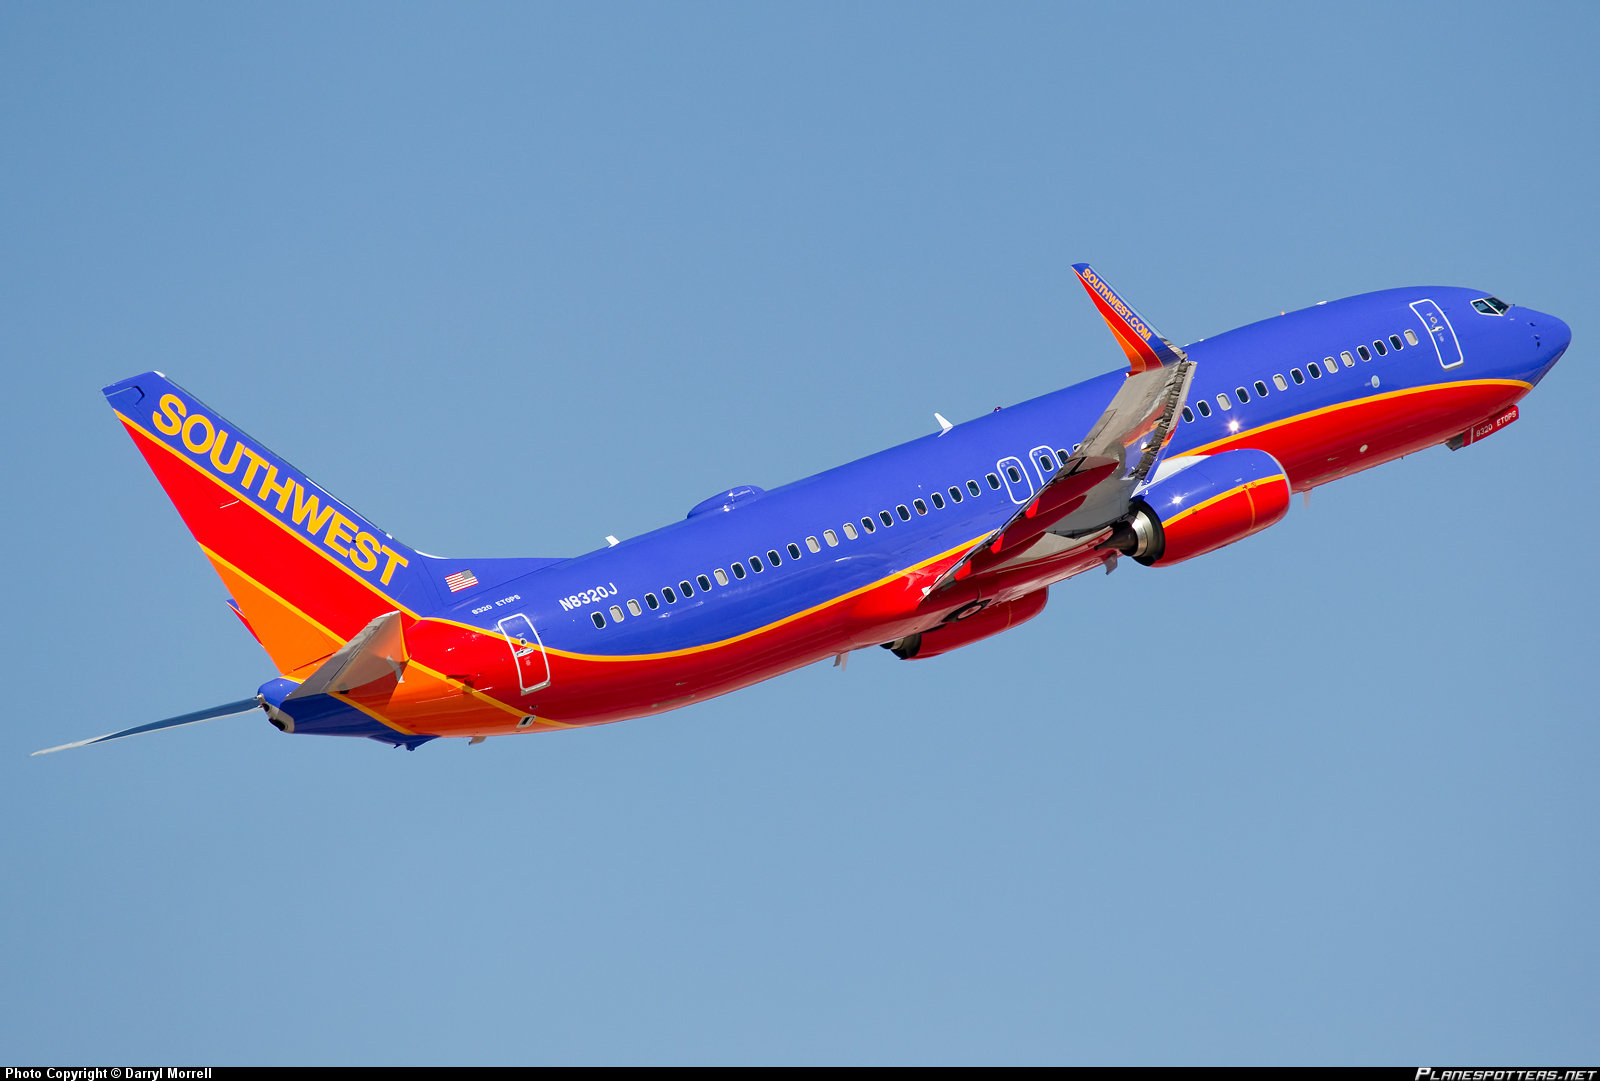 Alert Southwest Airlines Grounds 128 Planes